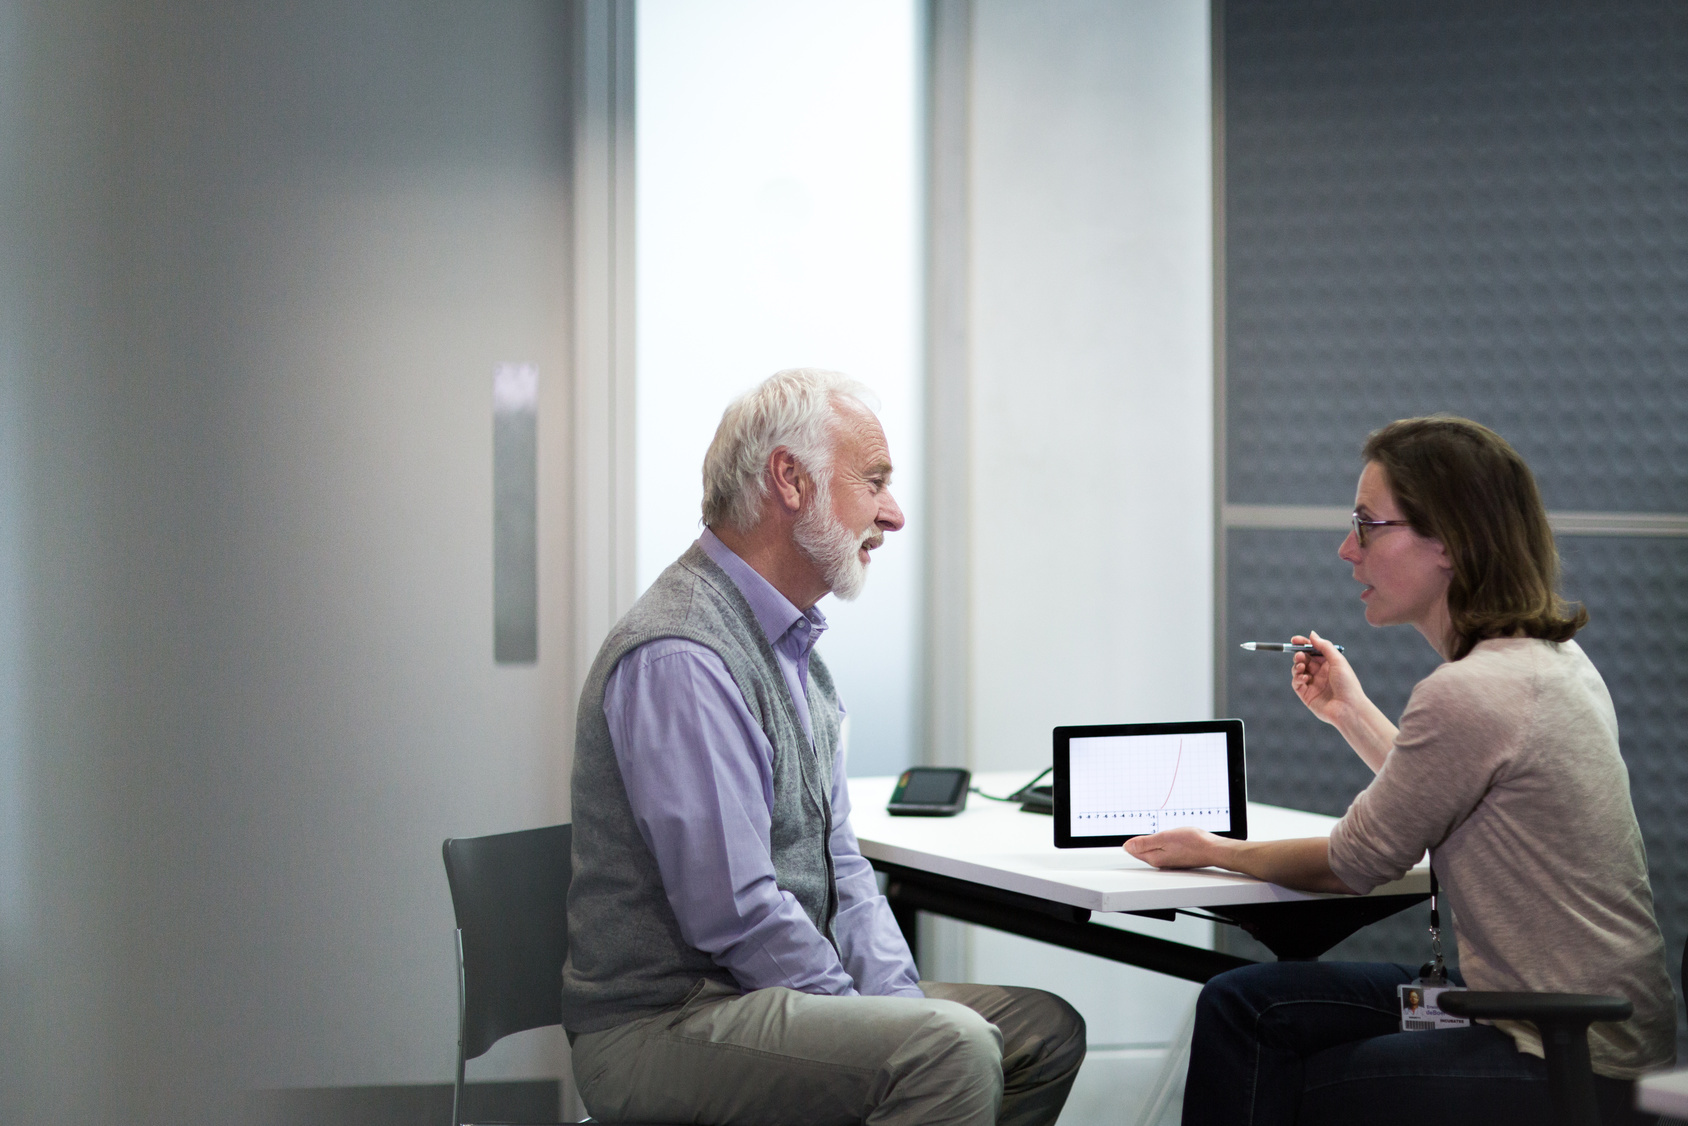 Man and woman discussing healthcare date in front of tablet